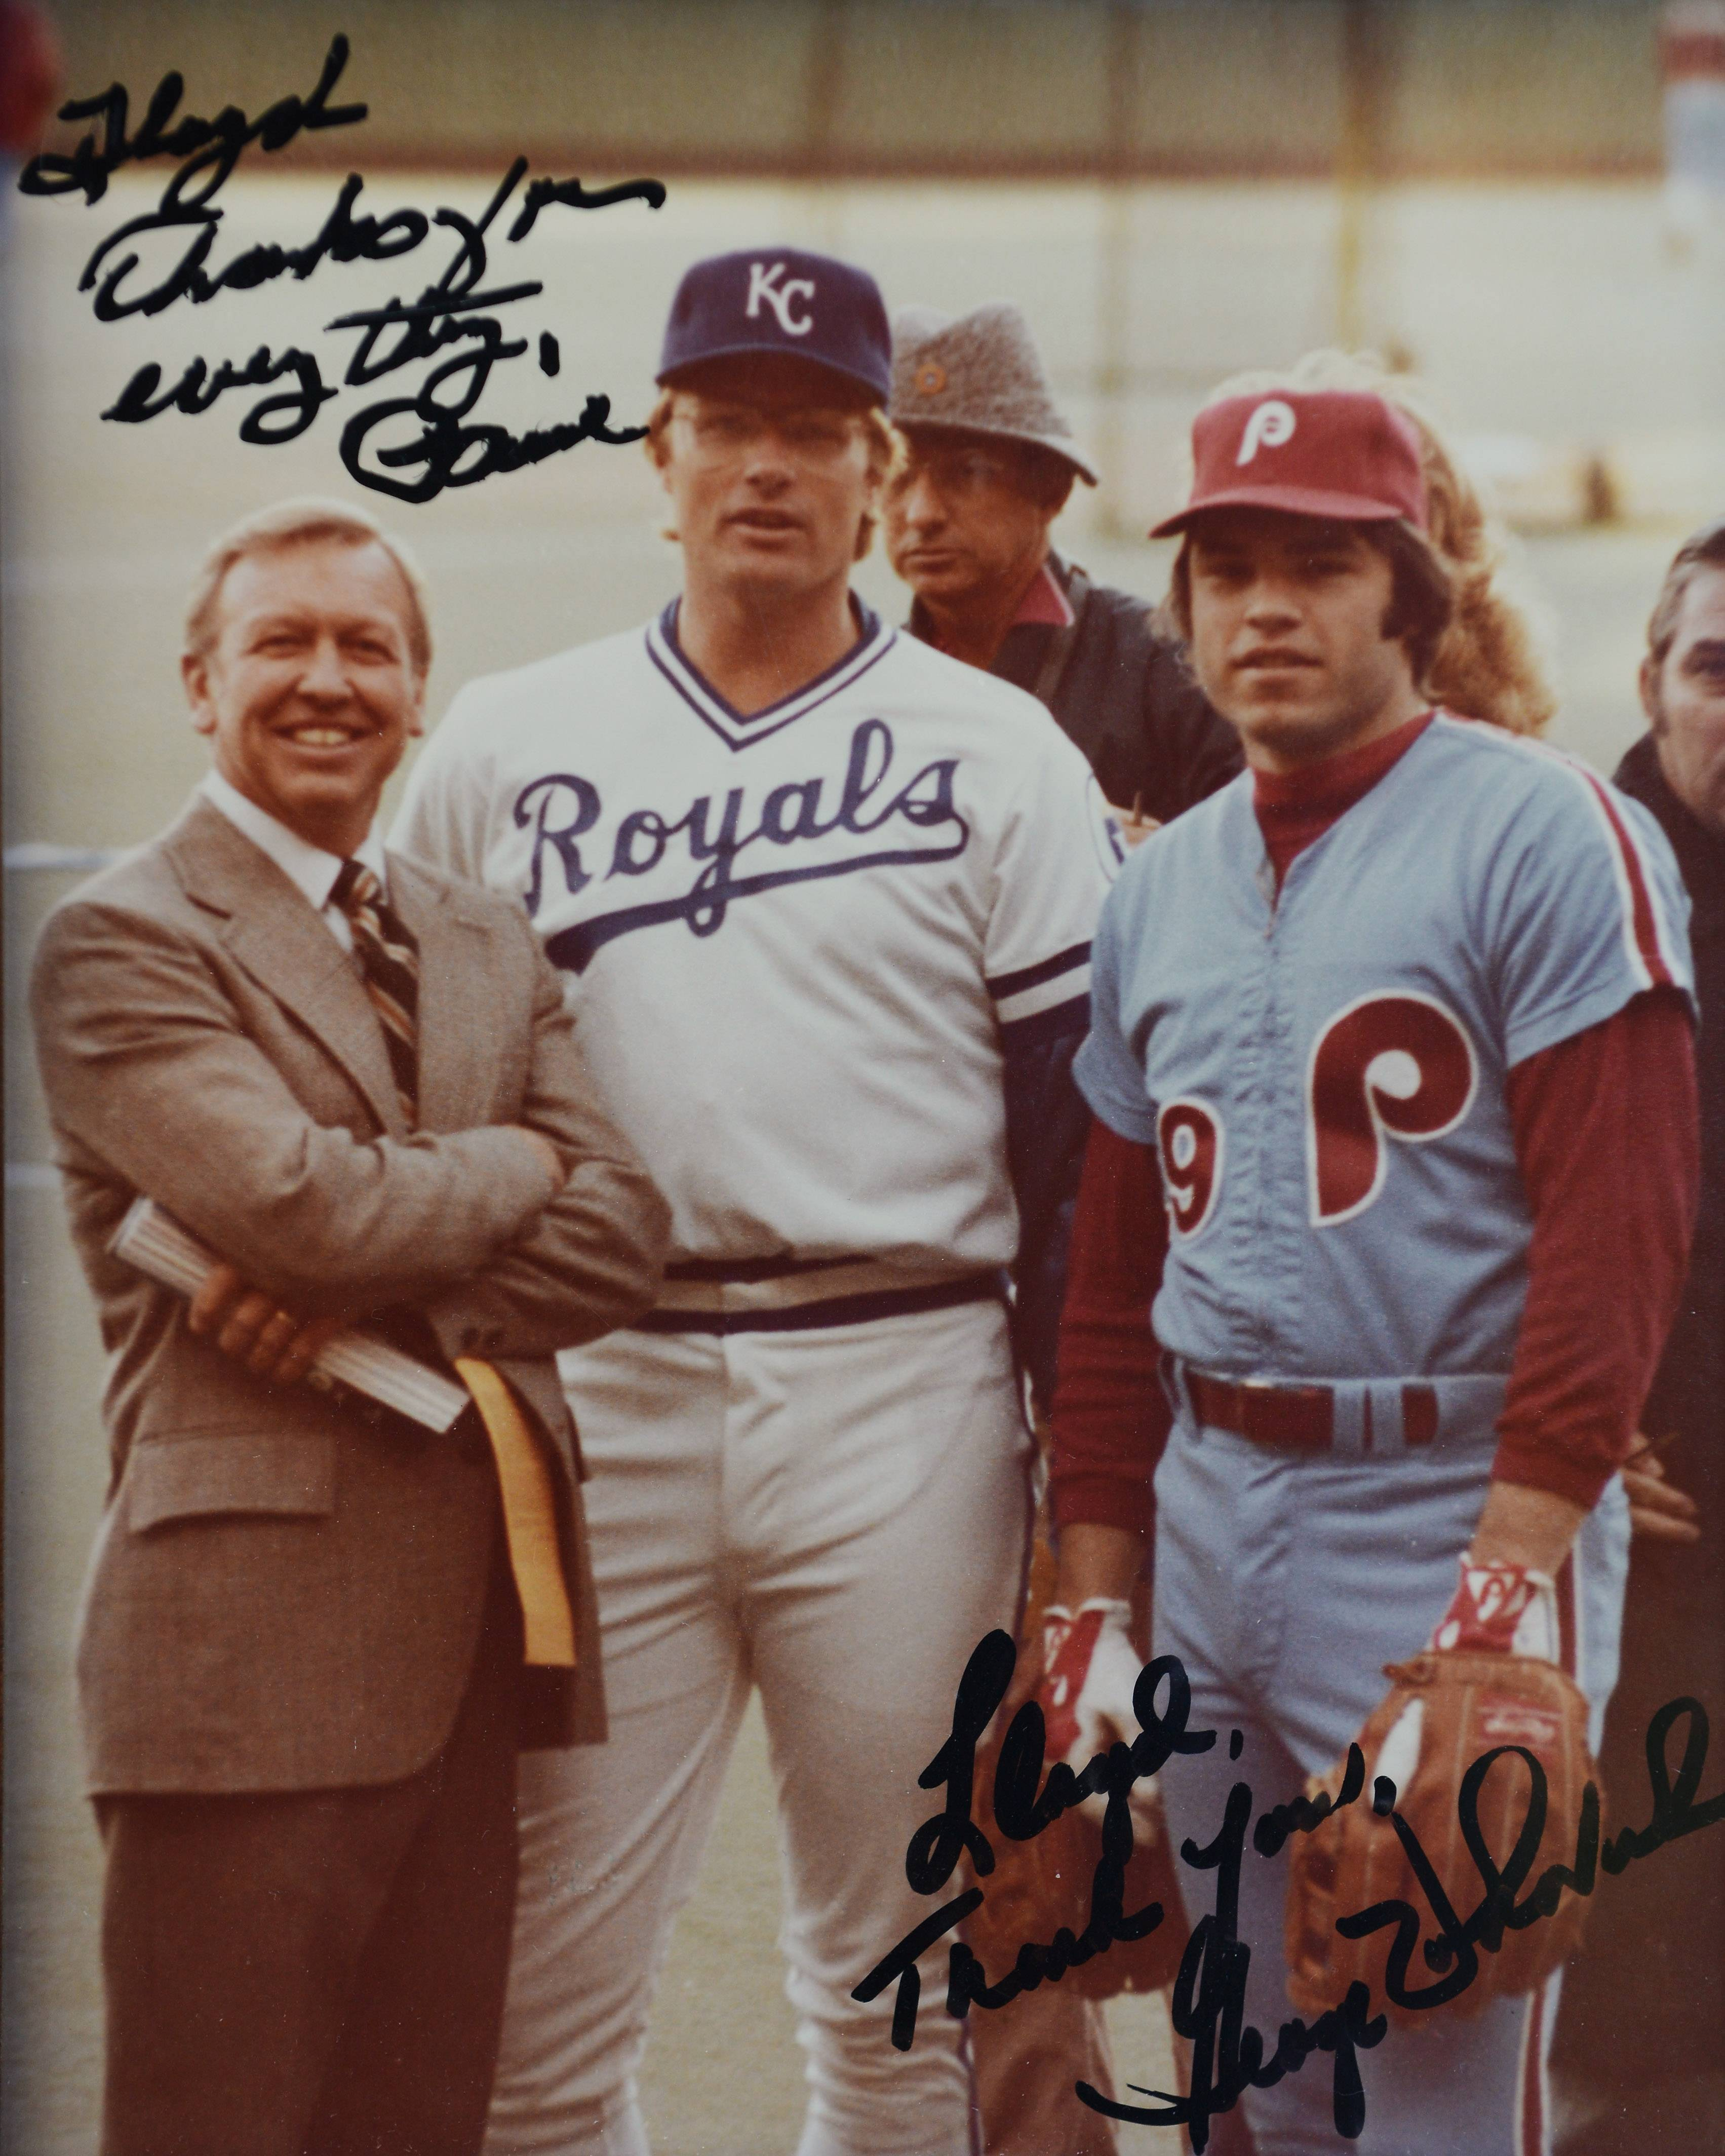 Lloyd Meyer cherishes this photo of himself, left, with Paul Splittorff, center and George Vukovich of the Phillies, taken during the 1980 World Series.